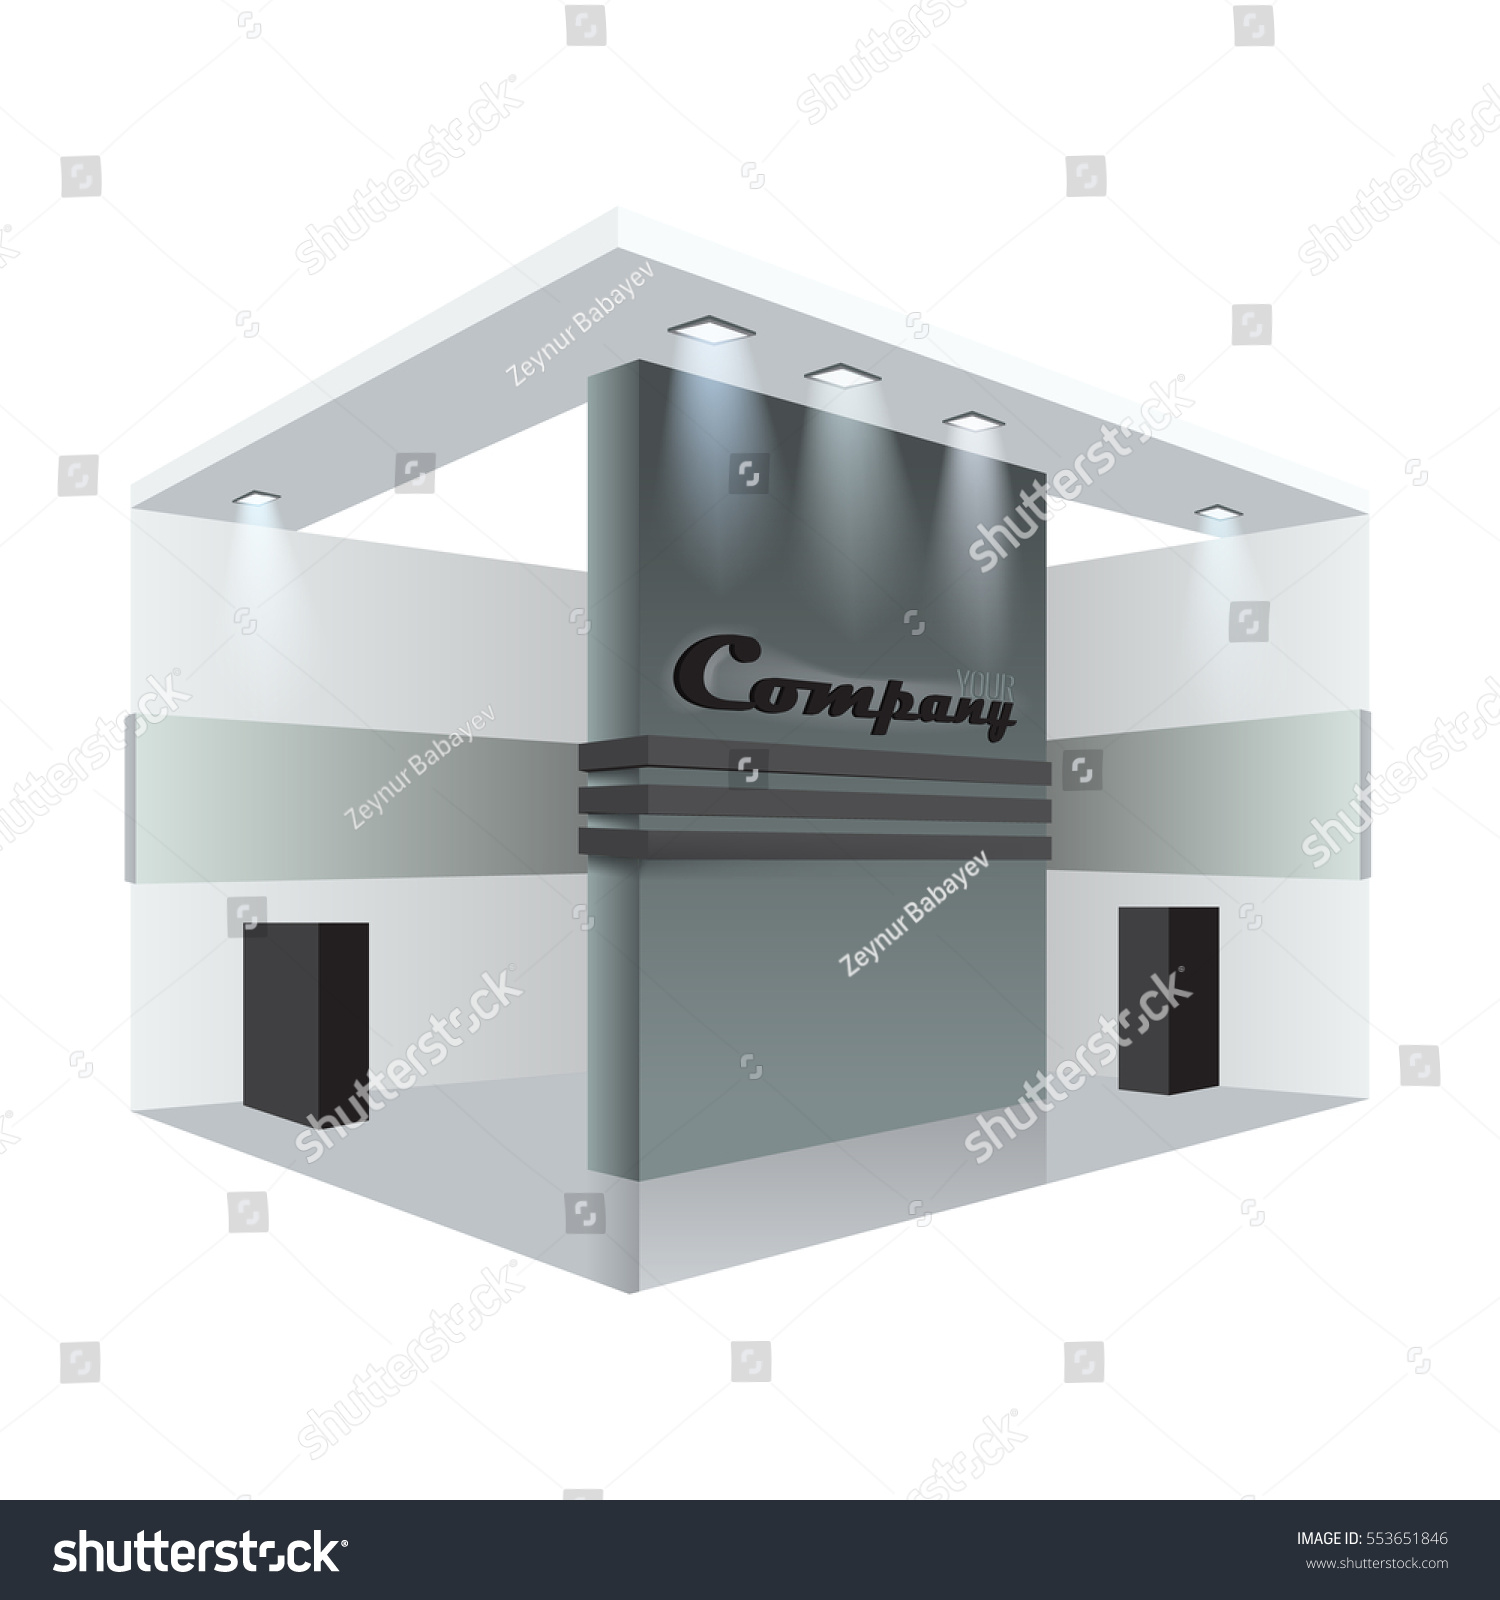 Exhibition Stand Roll Up : Illustrated unique creative exhibition stand display stock vector